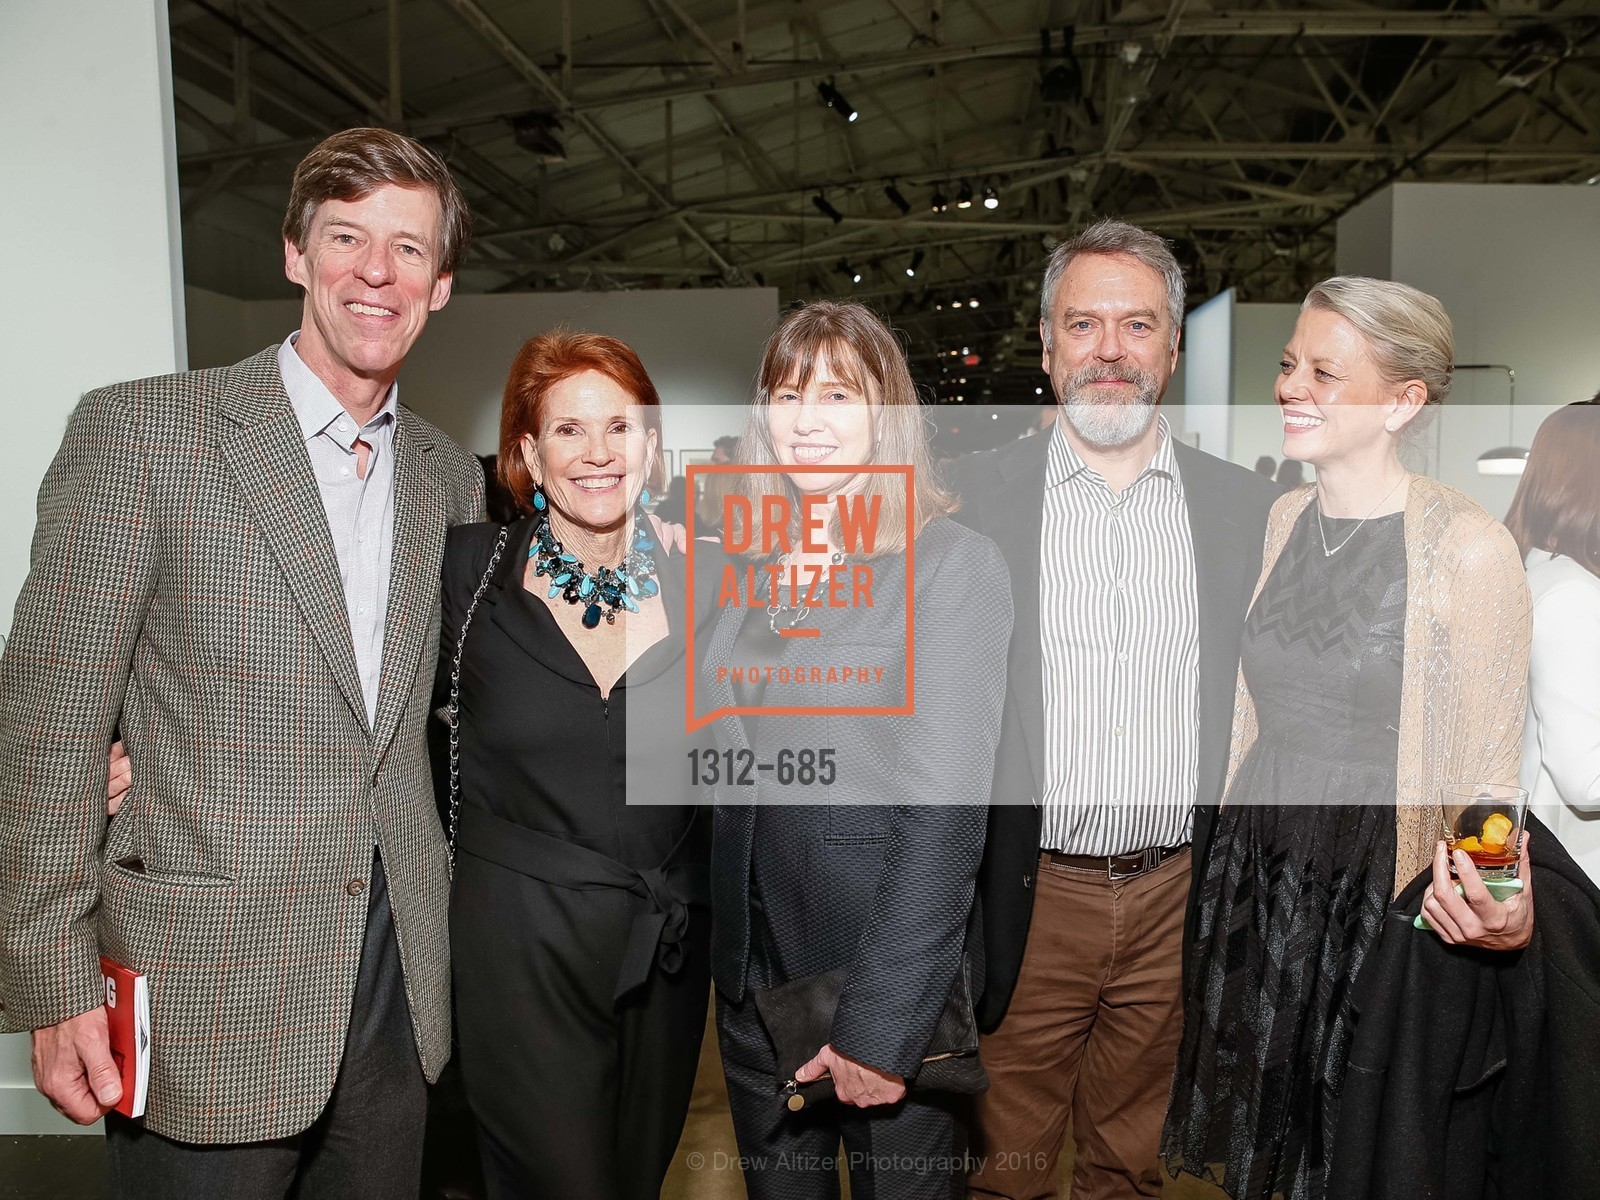 Dick Spalding, Helen Spalding, Leslie Berriman, Nion McEvoy, Katherine Clark, FOG Design+Art Preview Gala, Fort Mason Center Festival Pavilion, January 13th, 2016,Drew Altizer, Drew Altizer Photography, full-service agency, private events, San Francisco photographer, photographer california